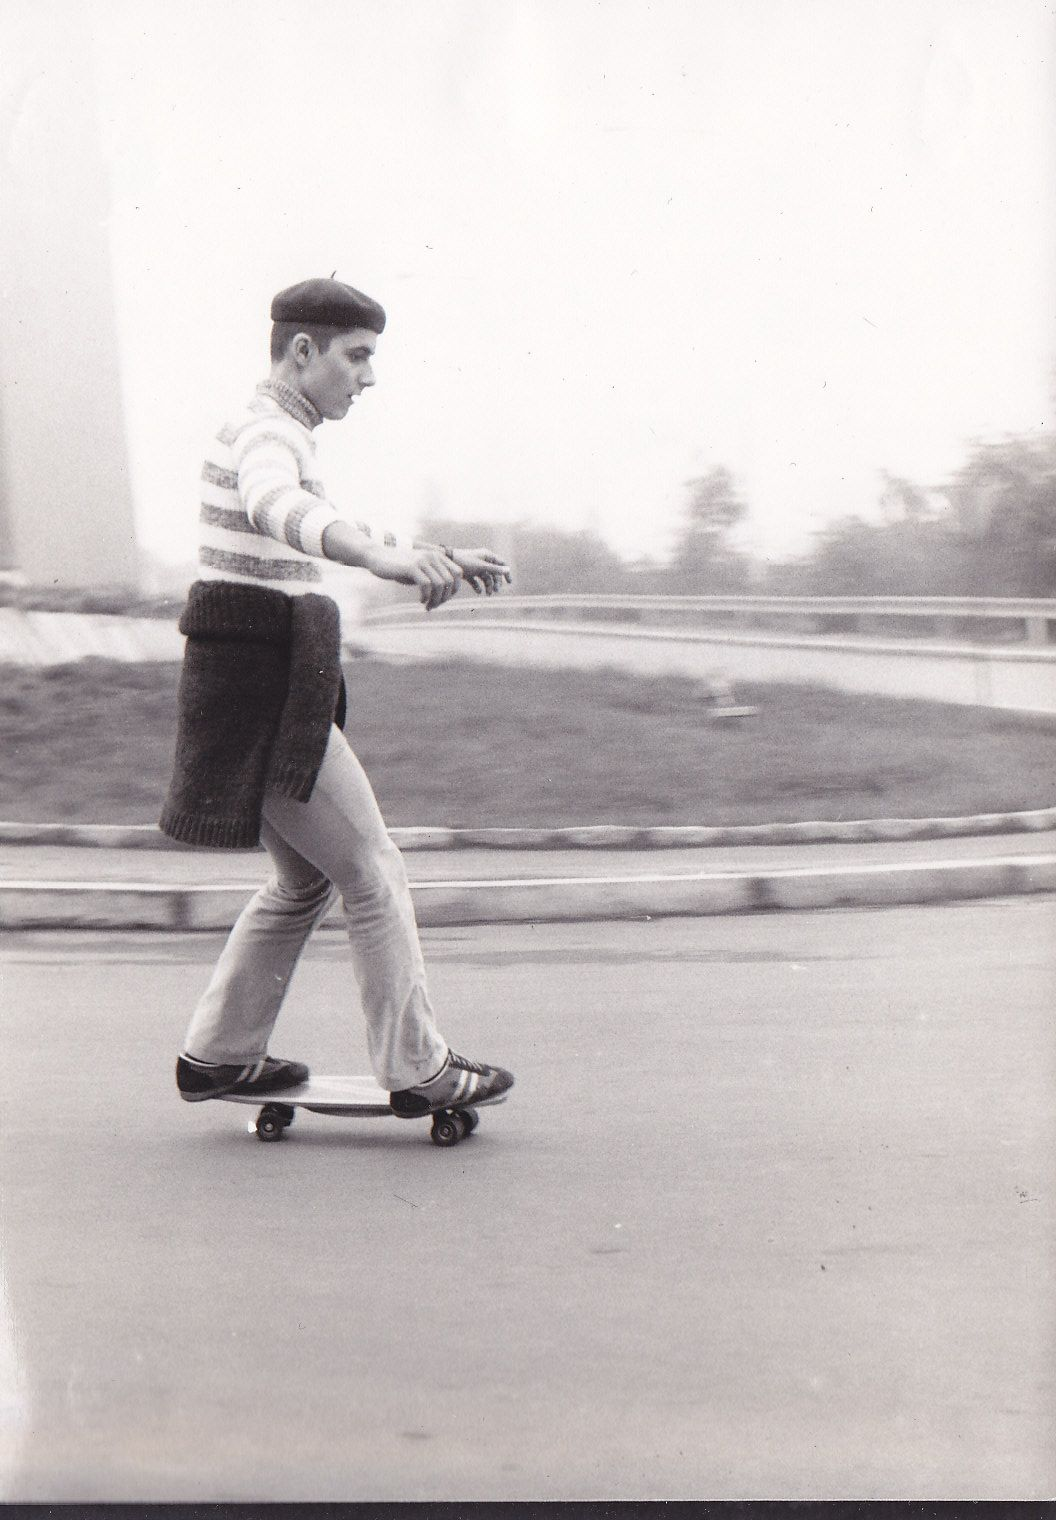 This is my uncle in times of 70s... maybe? Handmade skateboards and no informations... Czech republic was in deep comunism!!!  #skateboard #vintage #baret #hat #oldshool #70's #historical #blackandwhite #epic #uncle #strahov #sk8 #skateisnotacrime #sk8isgr8 #legenday #legend #founder